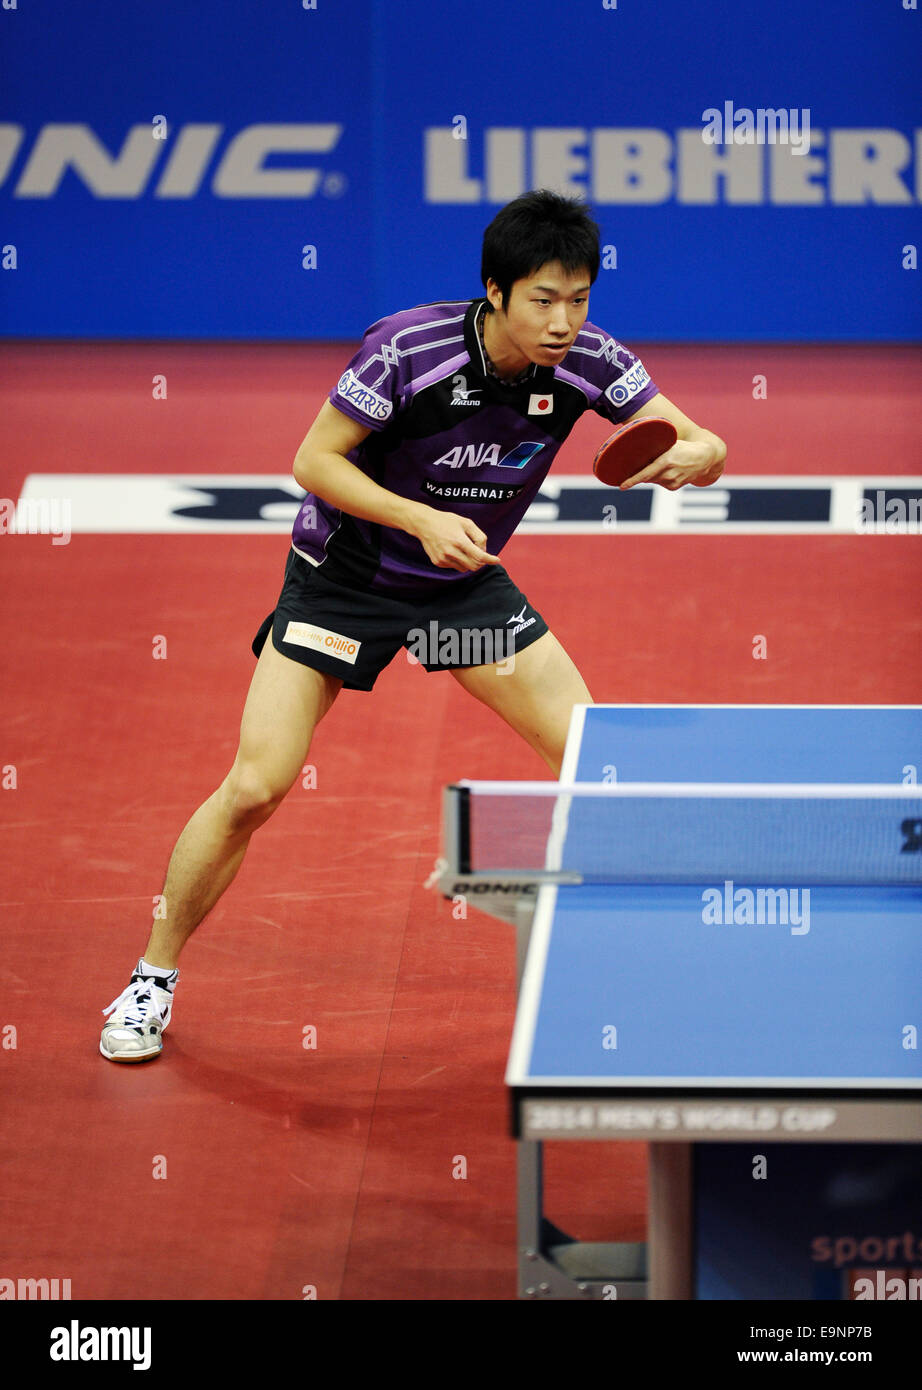 ISS Arena Duesseldorf, Germany 16.10.2014, Liebherr Tabletennis World Cup ,  Jun Mizutani (JPN) - Stock Image